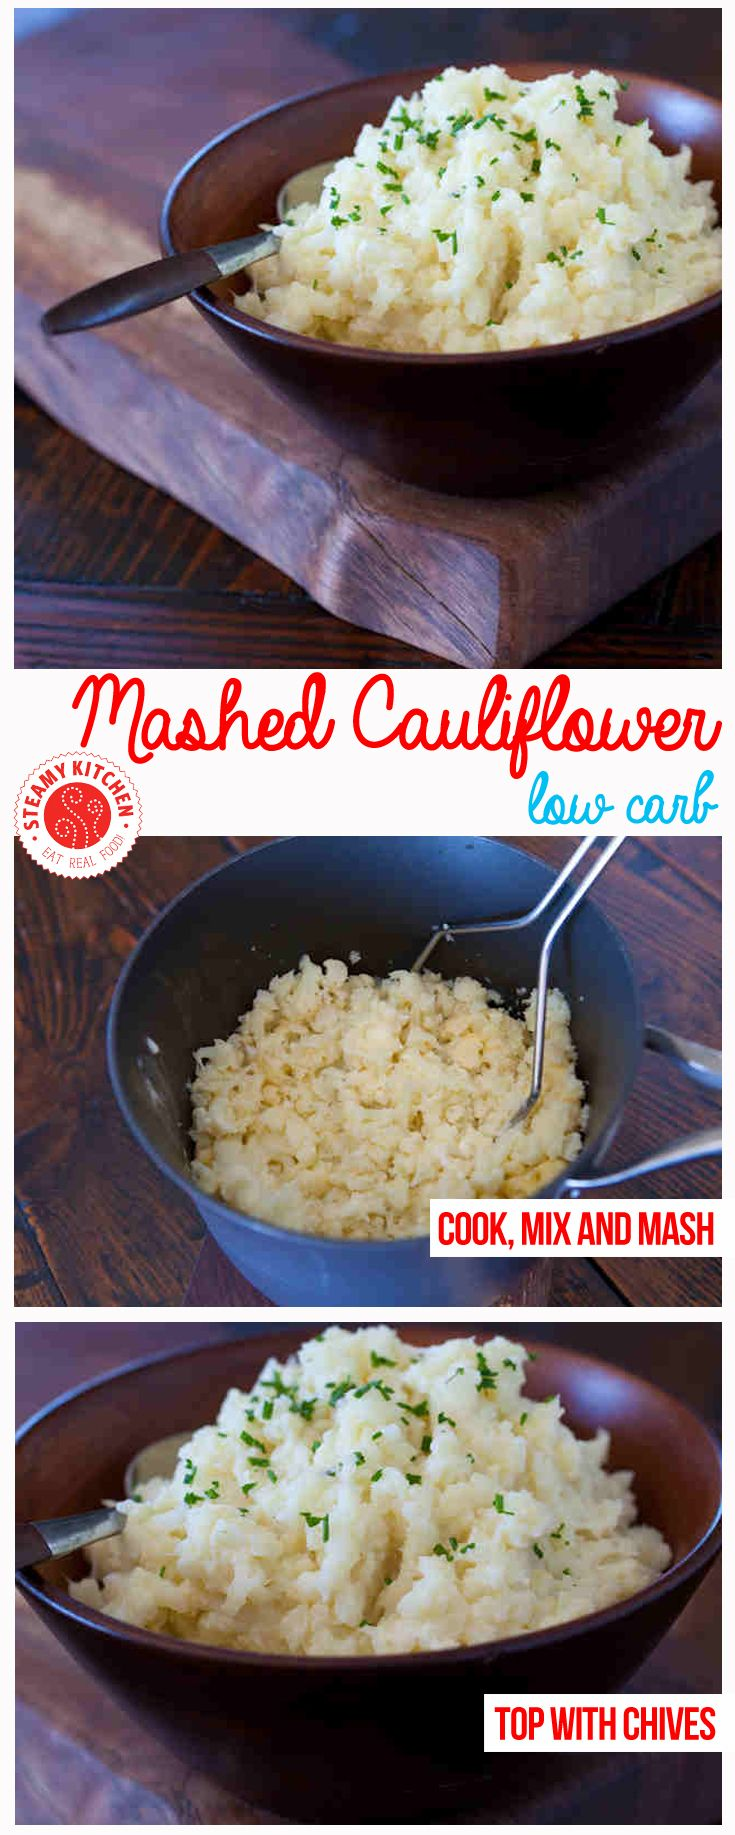 Mashed Cauliflower - If you're craving mashed potatoes this will not do the trick, but it still tastes good.